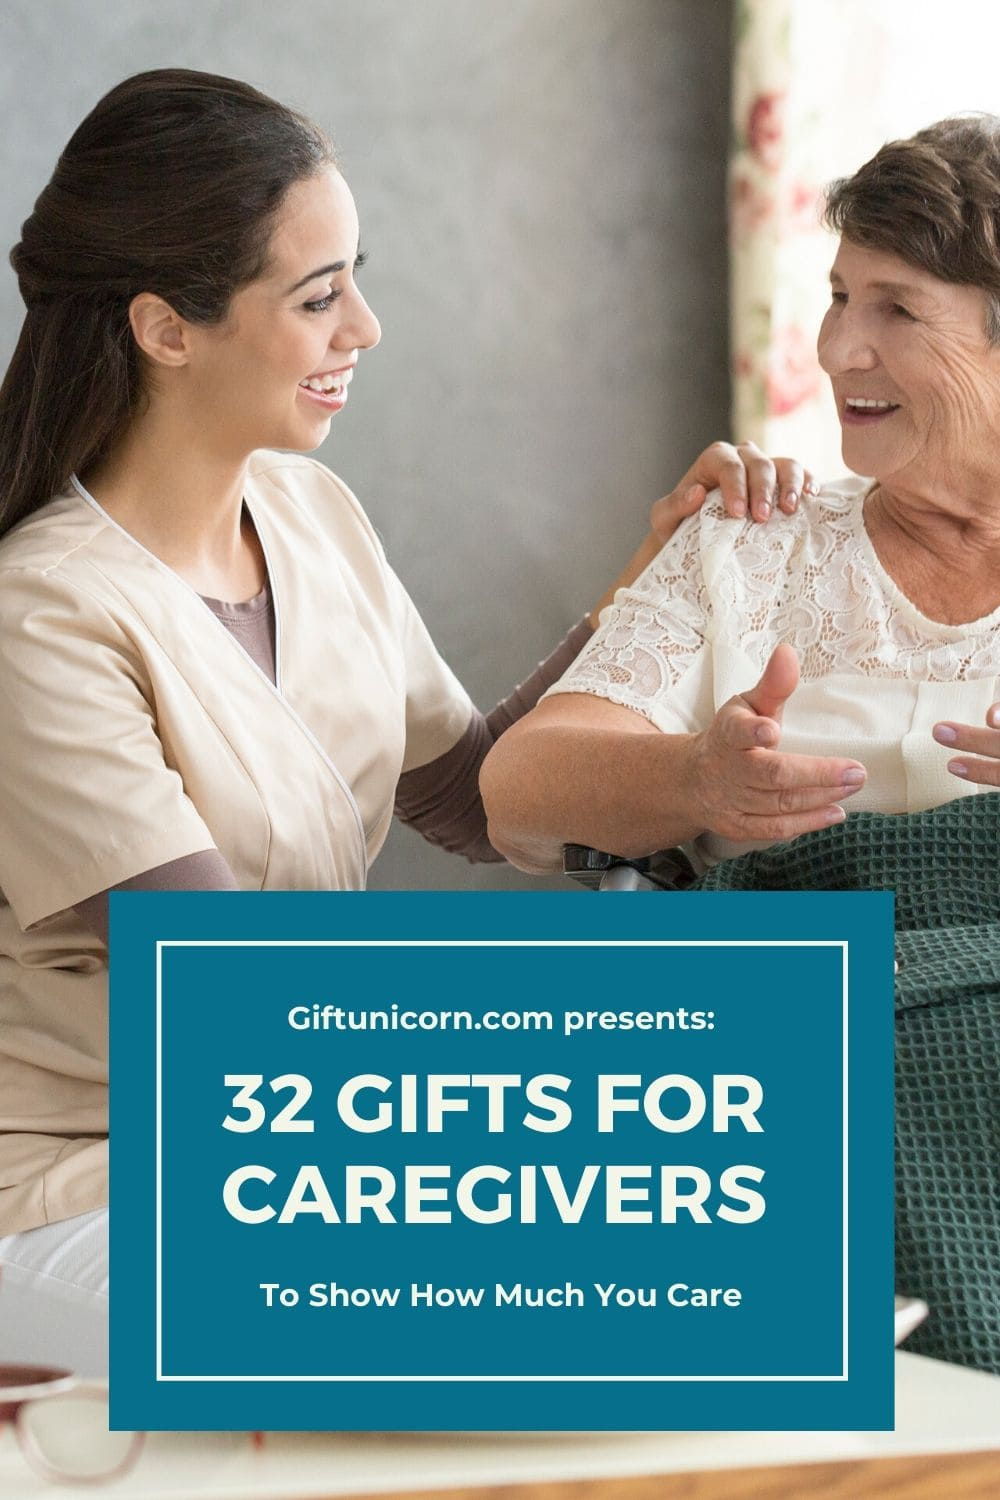 32 gifts for caregivers pin image